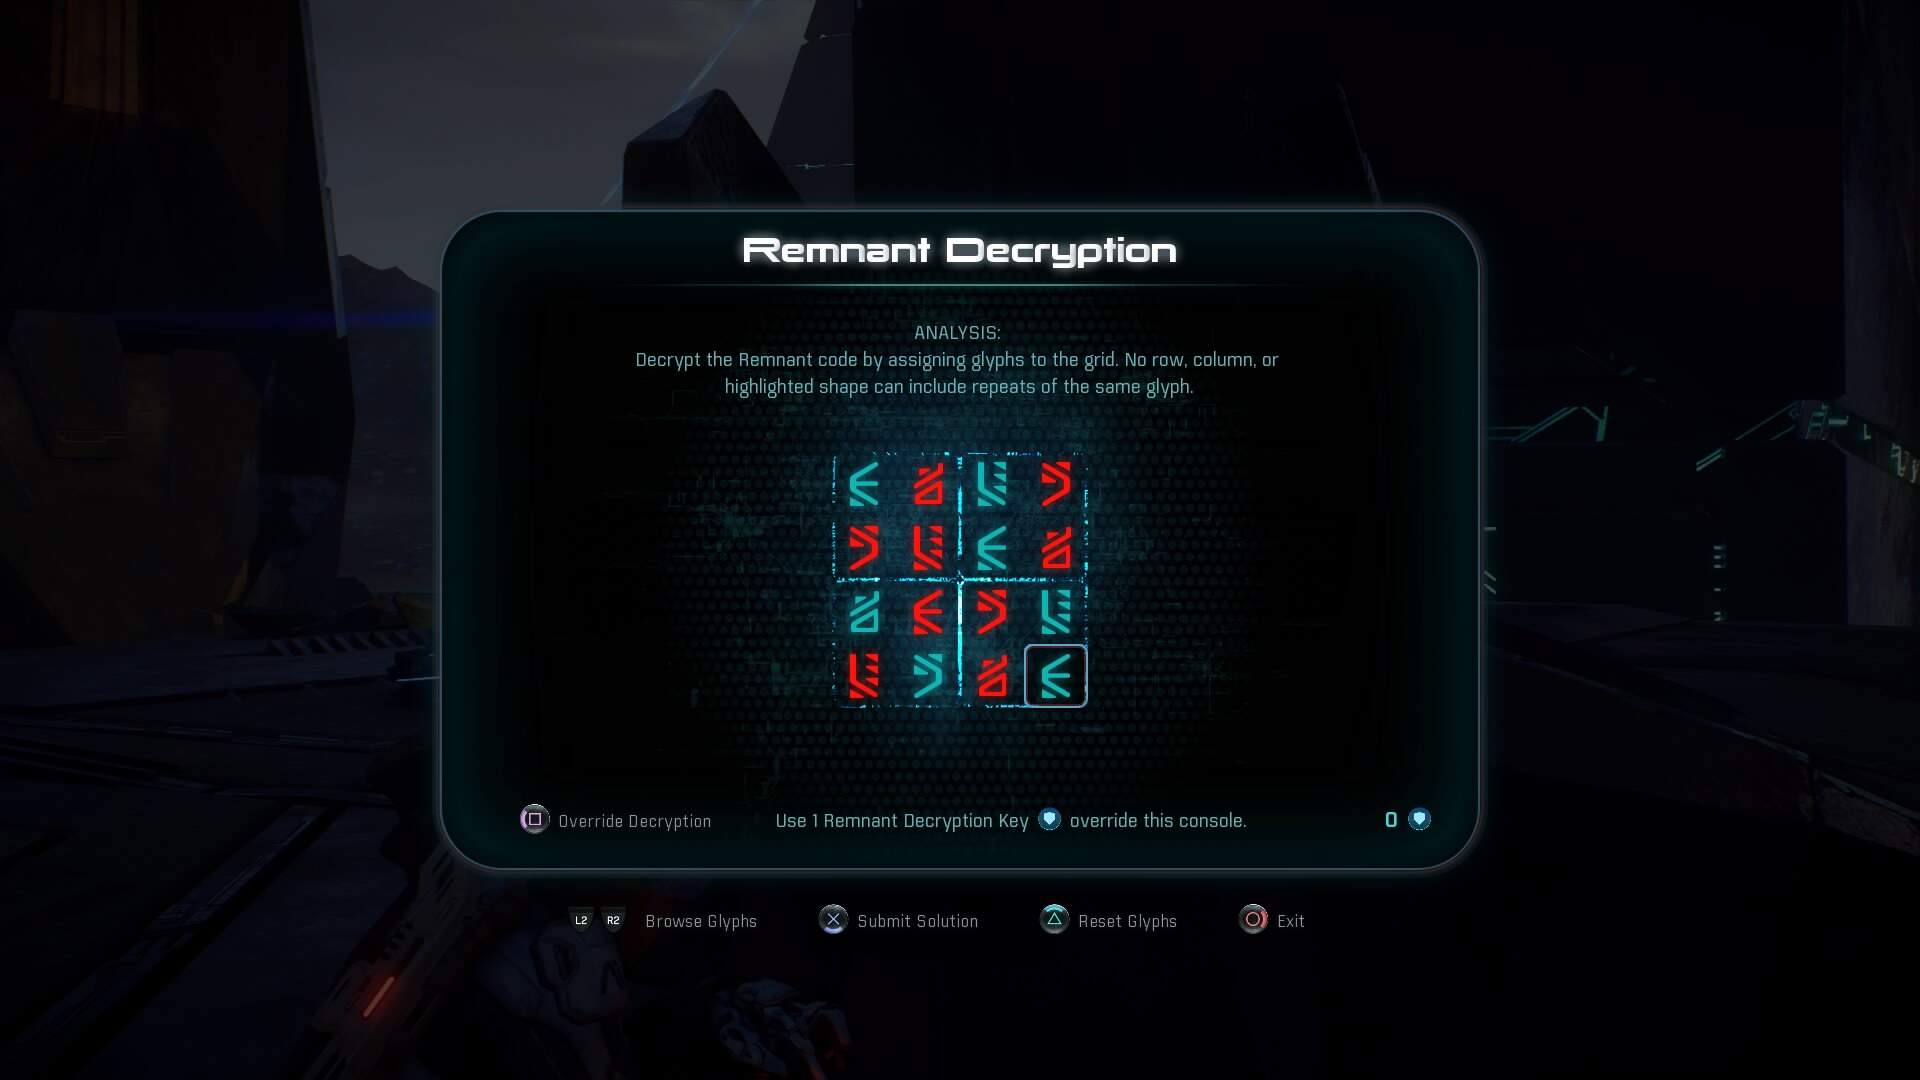 Mass Effect: Andromeda's Remnant Puzzles are the Worst